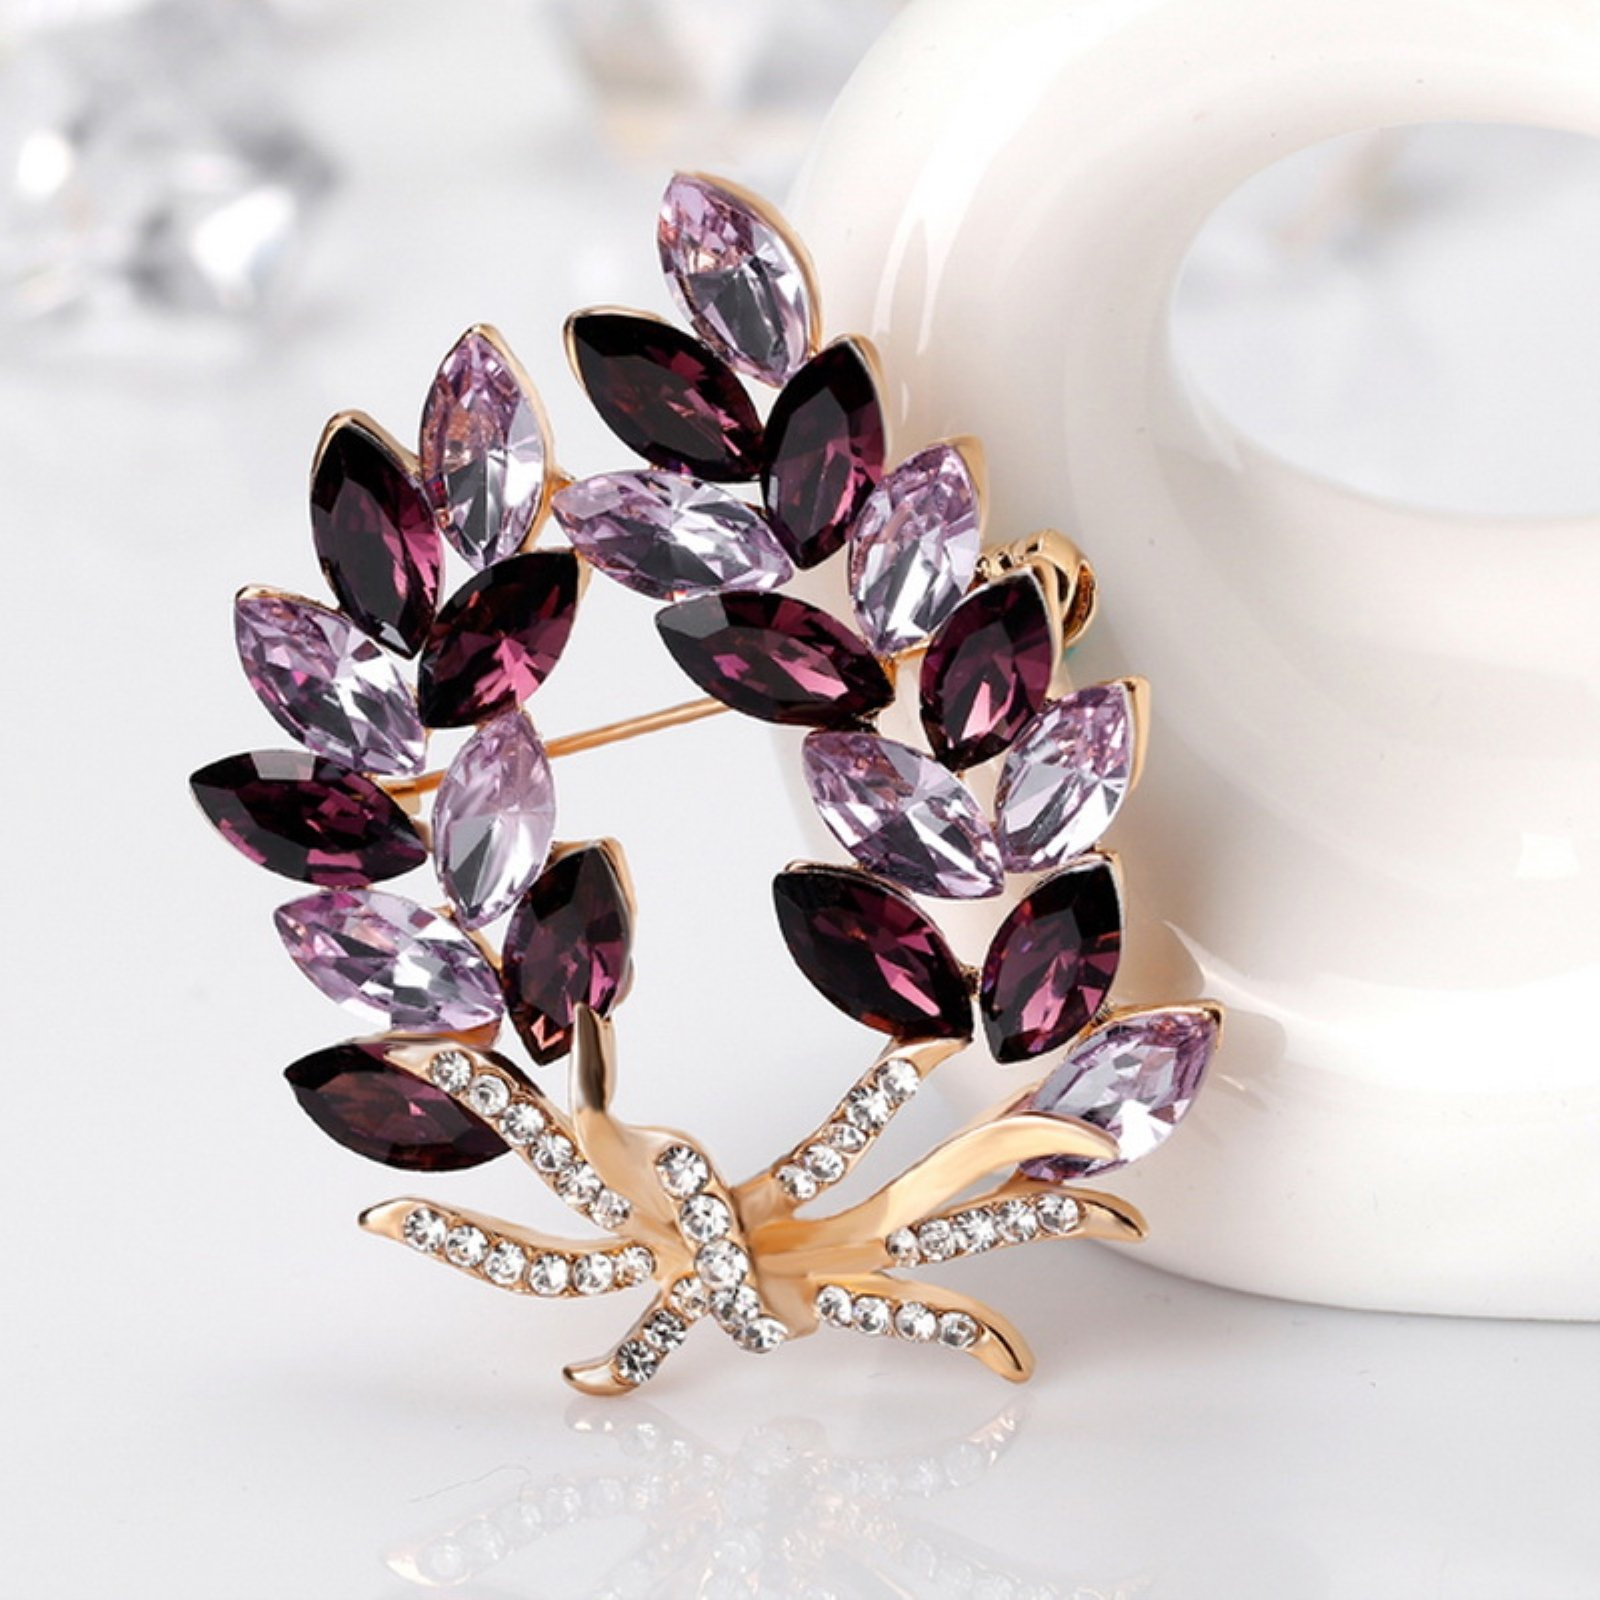 ptk12 Coat Accessories Purple Crystal Flower Casual Party Bouquets Rhinestone Brooch by ptk12 (Image #6)